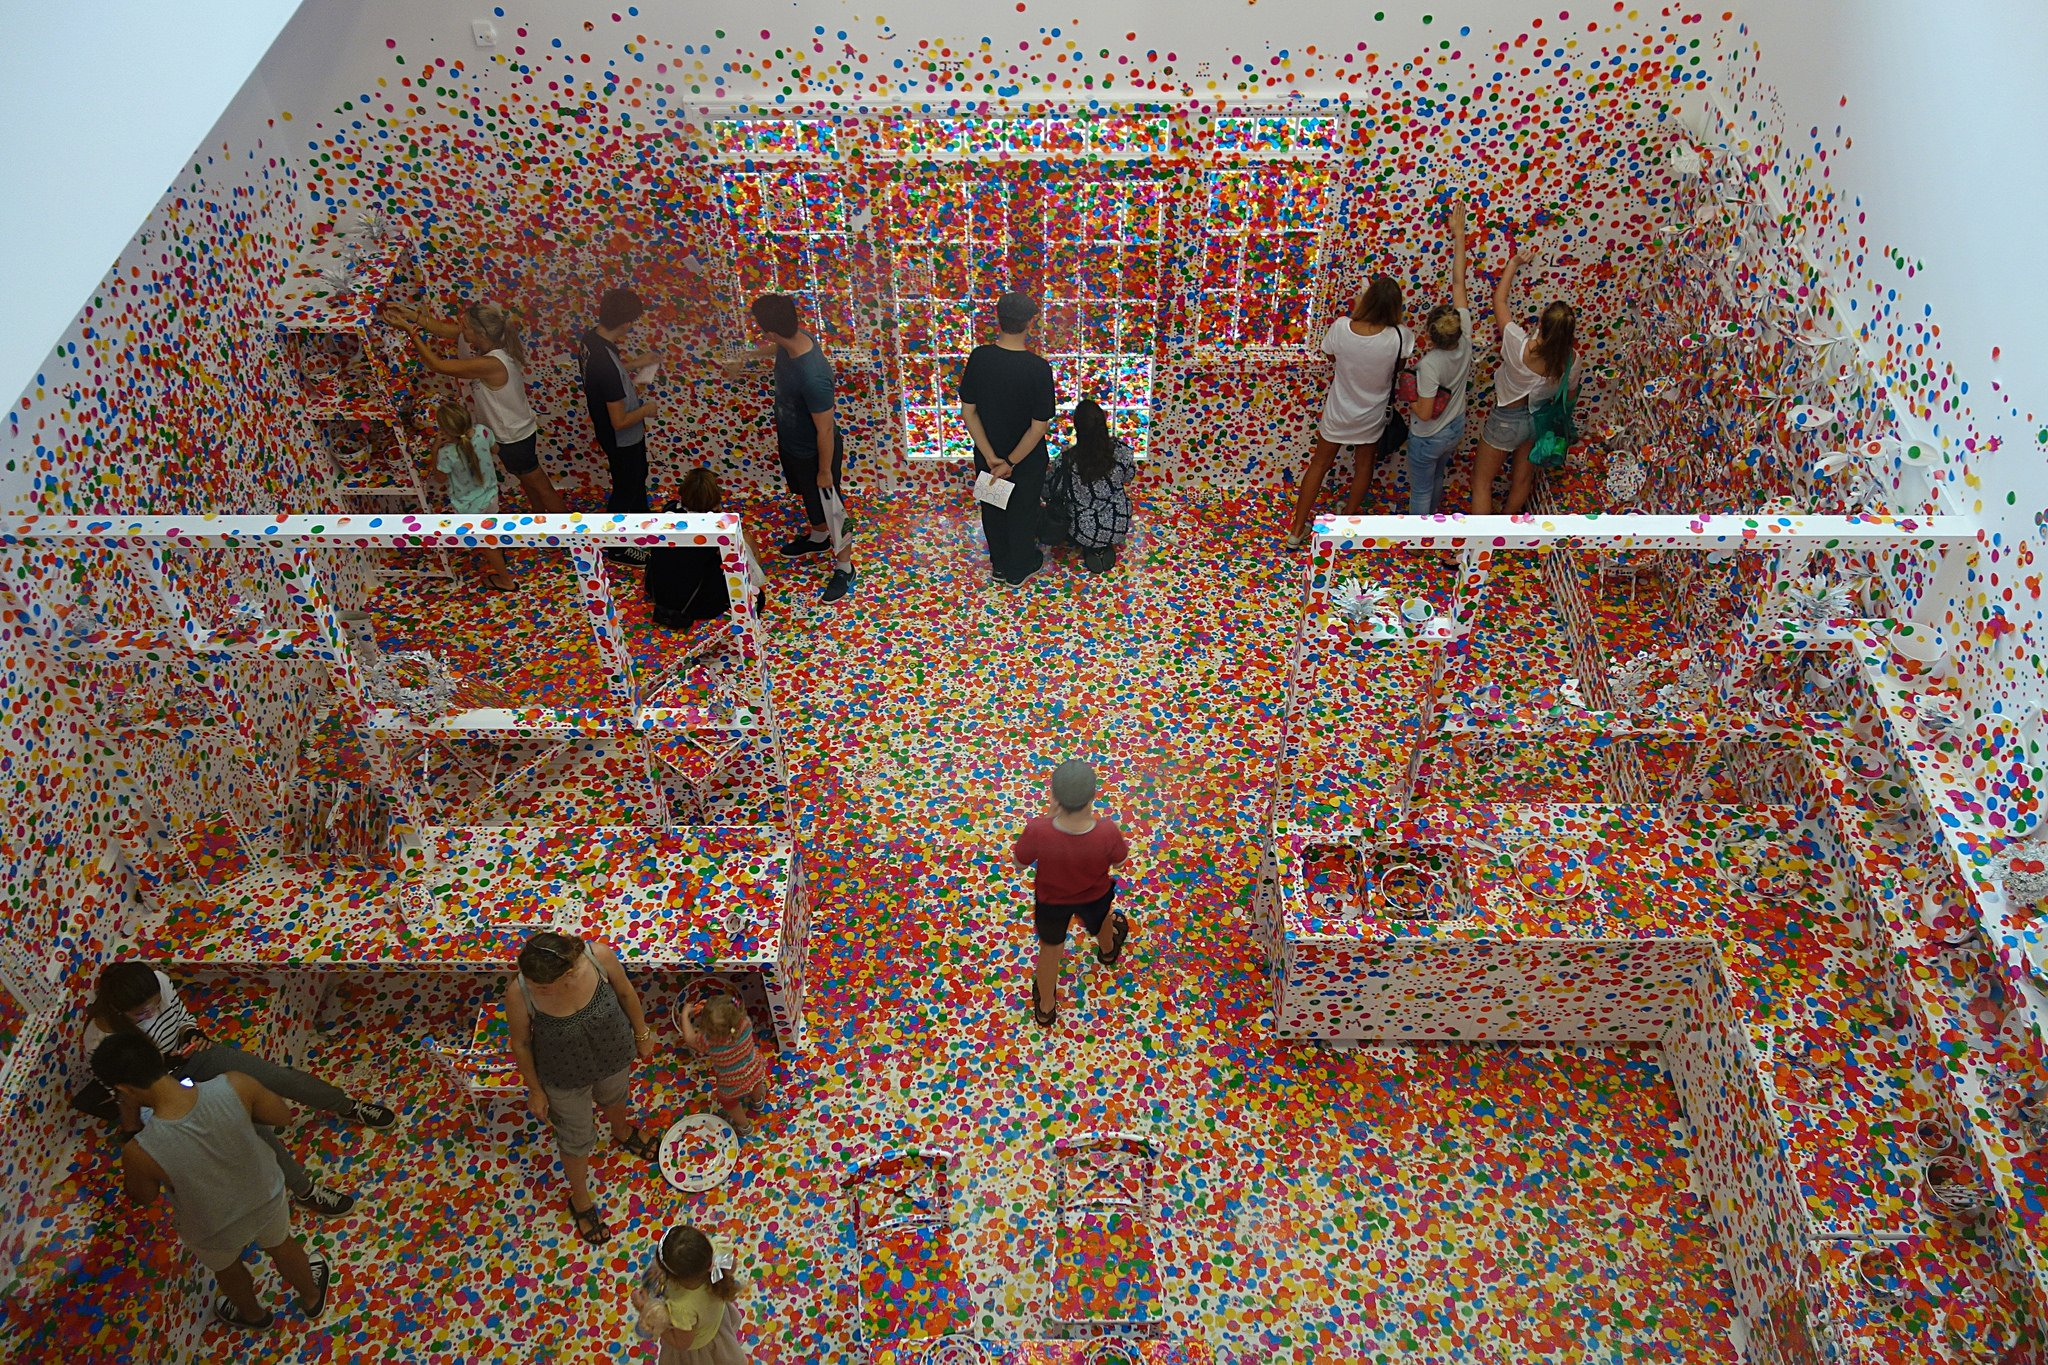 Yayoi Kusama's Obliteration Room Photo : Interestdbystandr / flickr